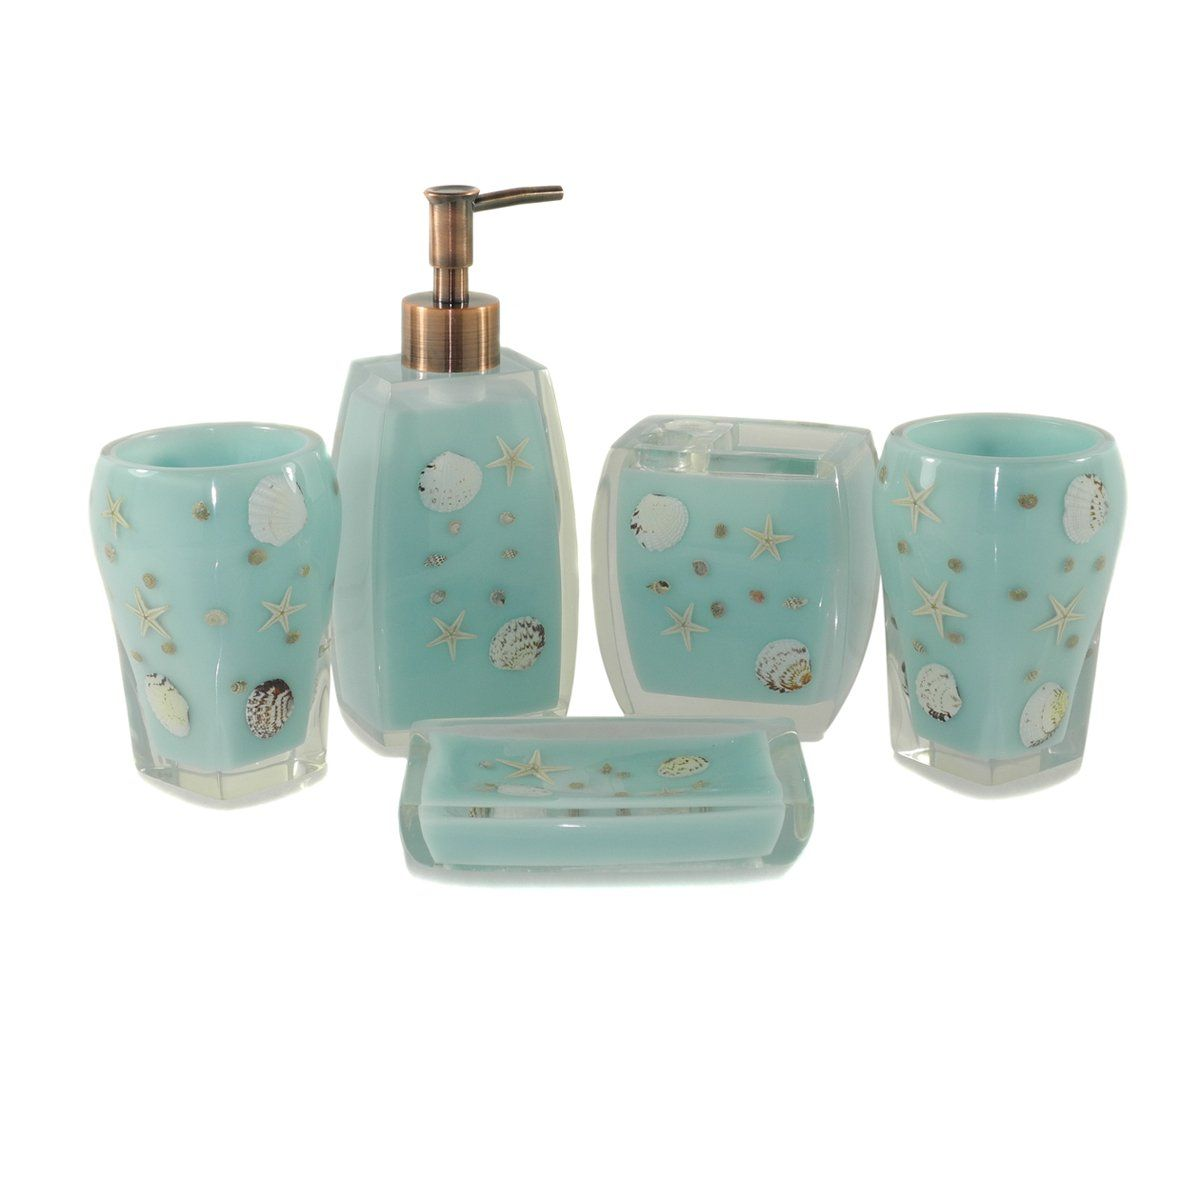 Dream bath blue starfish bath ensemble 5 for Teal bathroom accessories sets